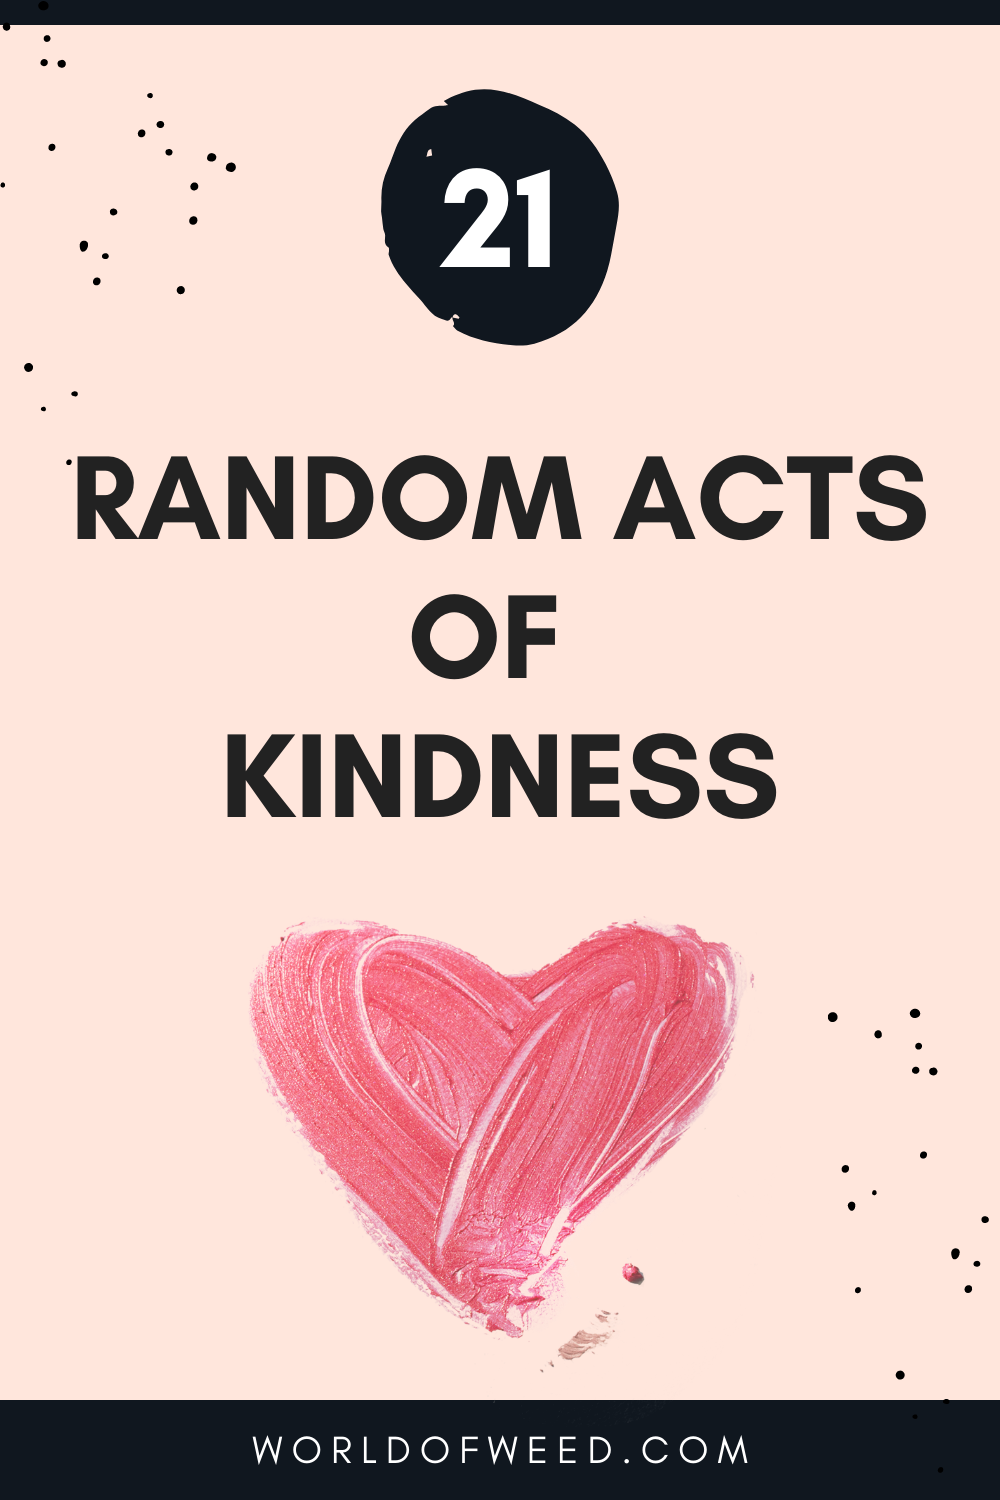 21 Random Acts of Kindness for World Kindness Day